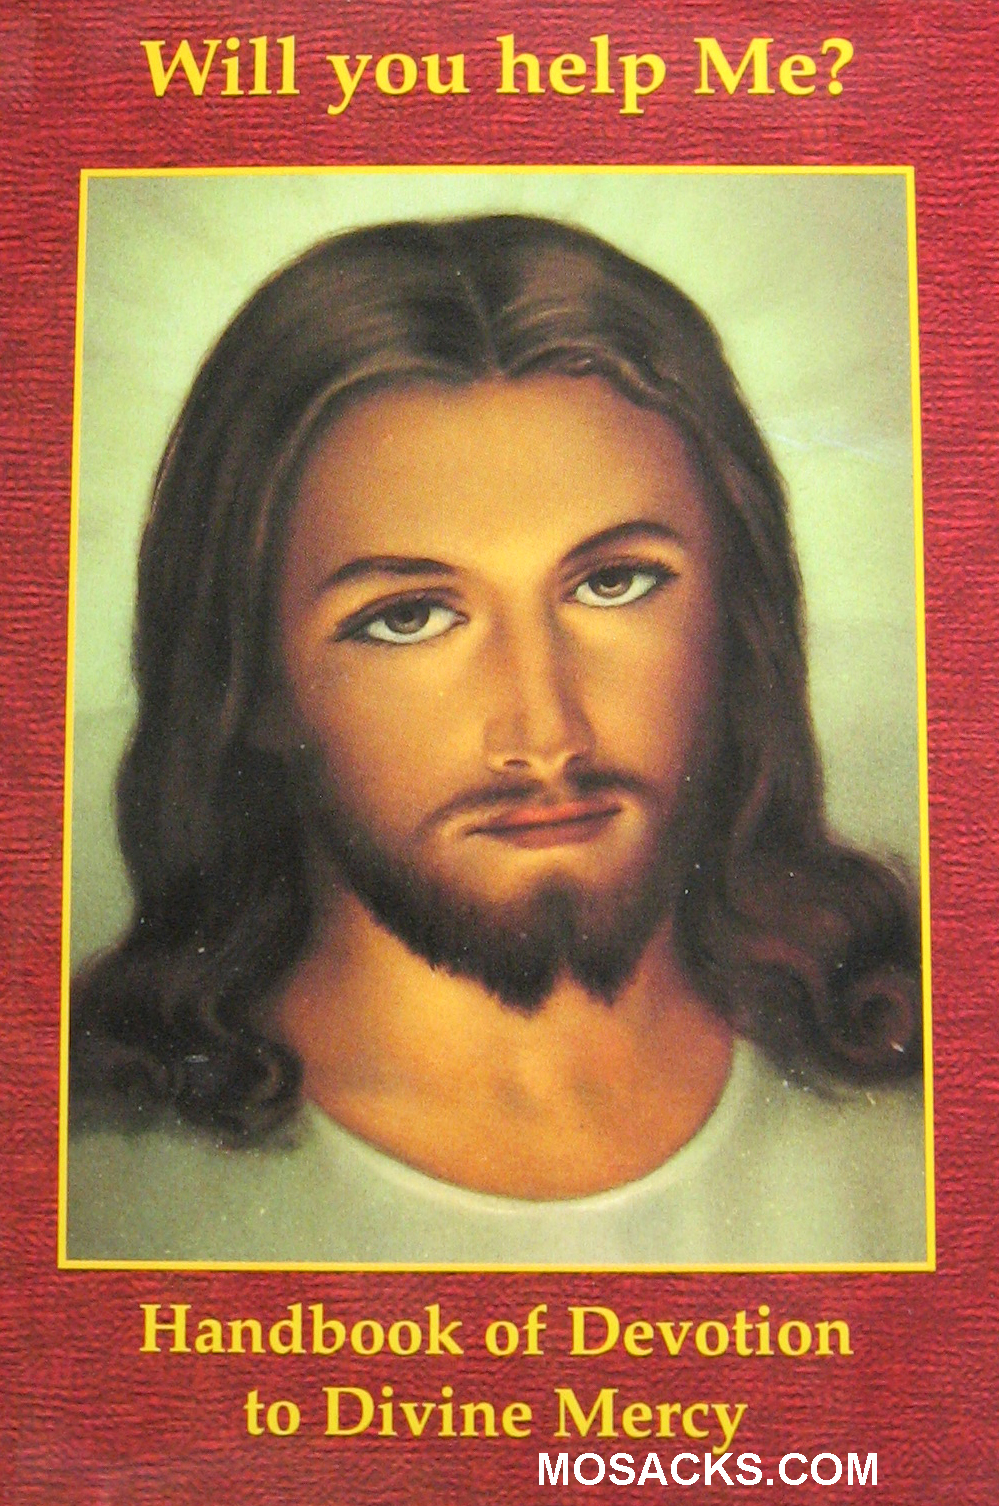 Will You Help Me Handbook of Devotion to Divine Mercy 145-9781872276151